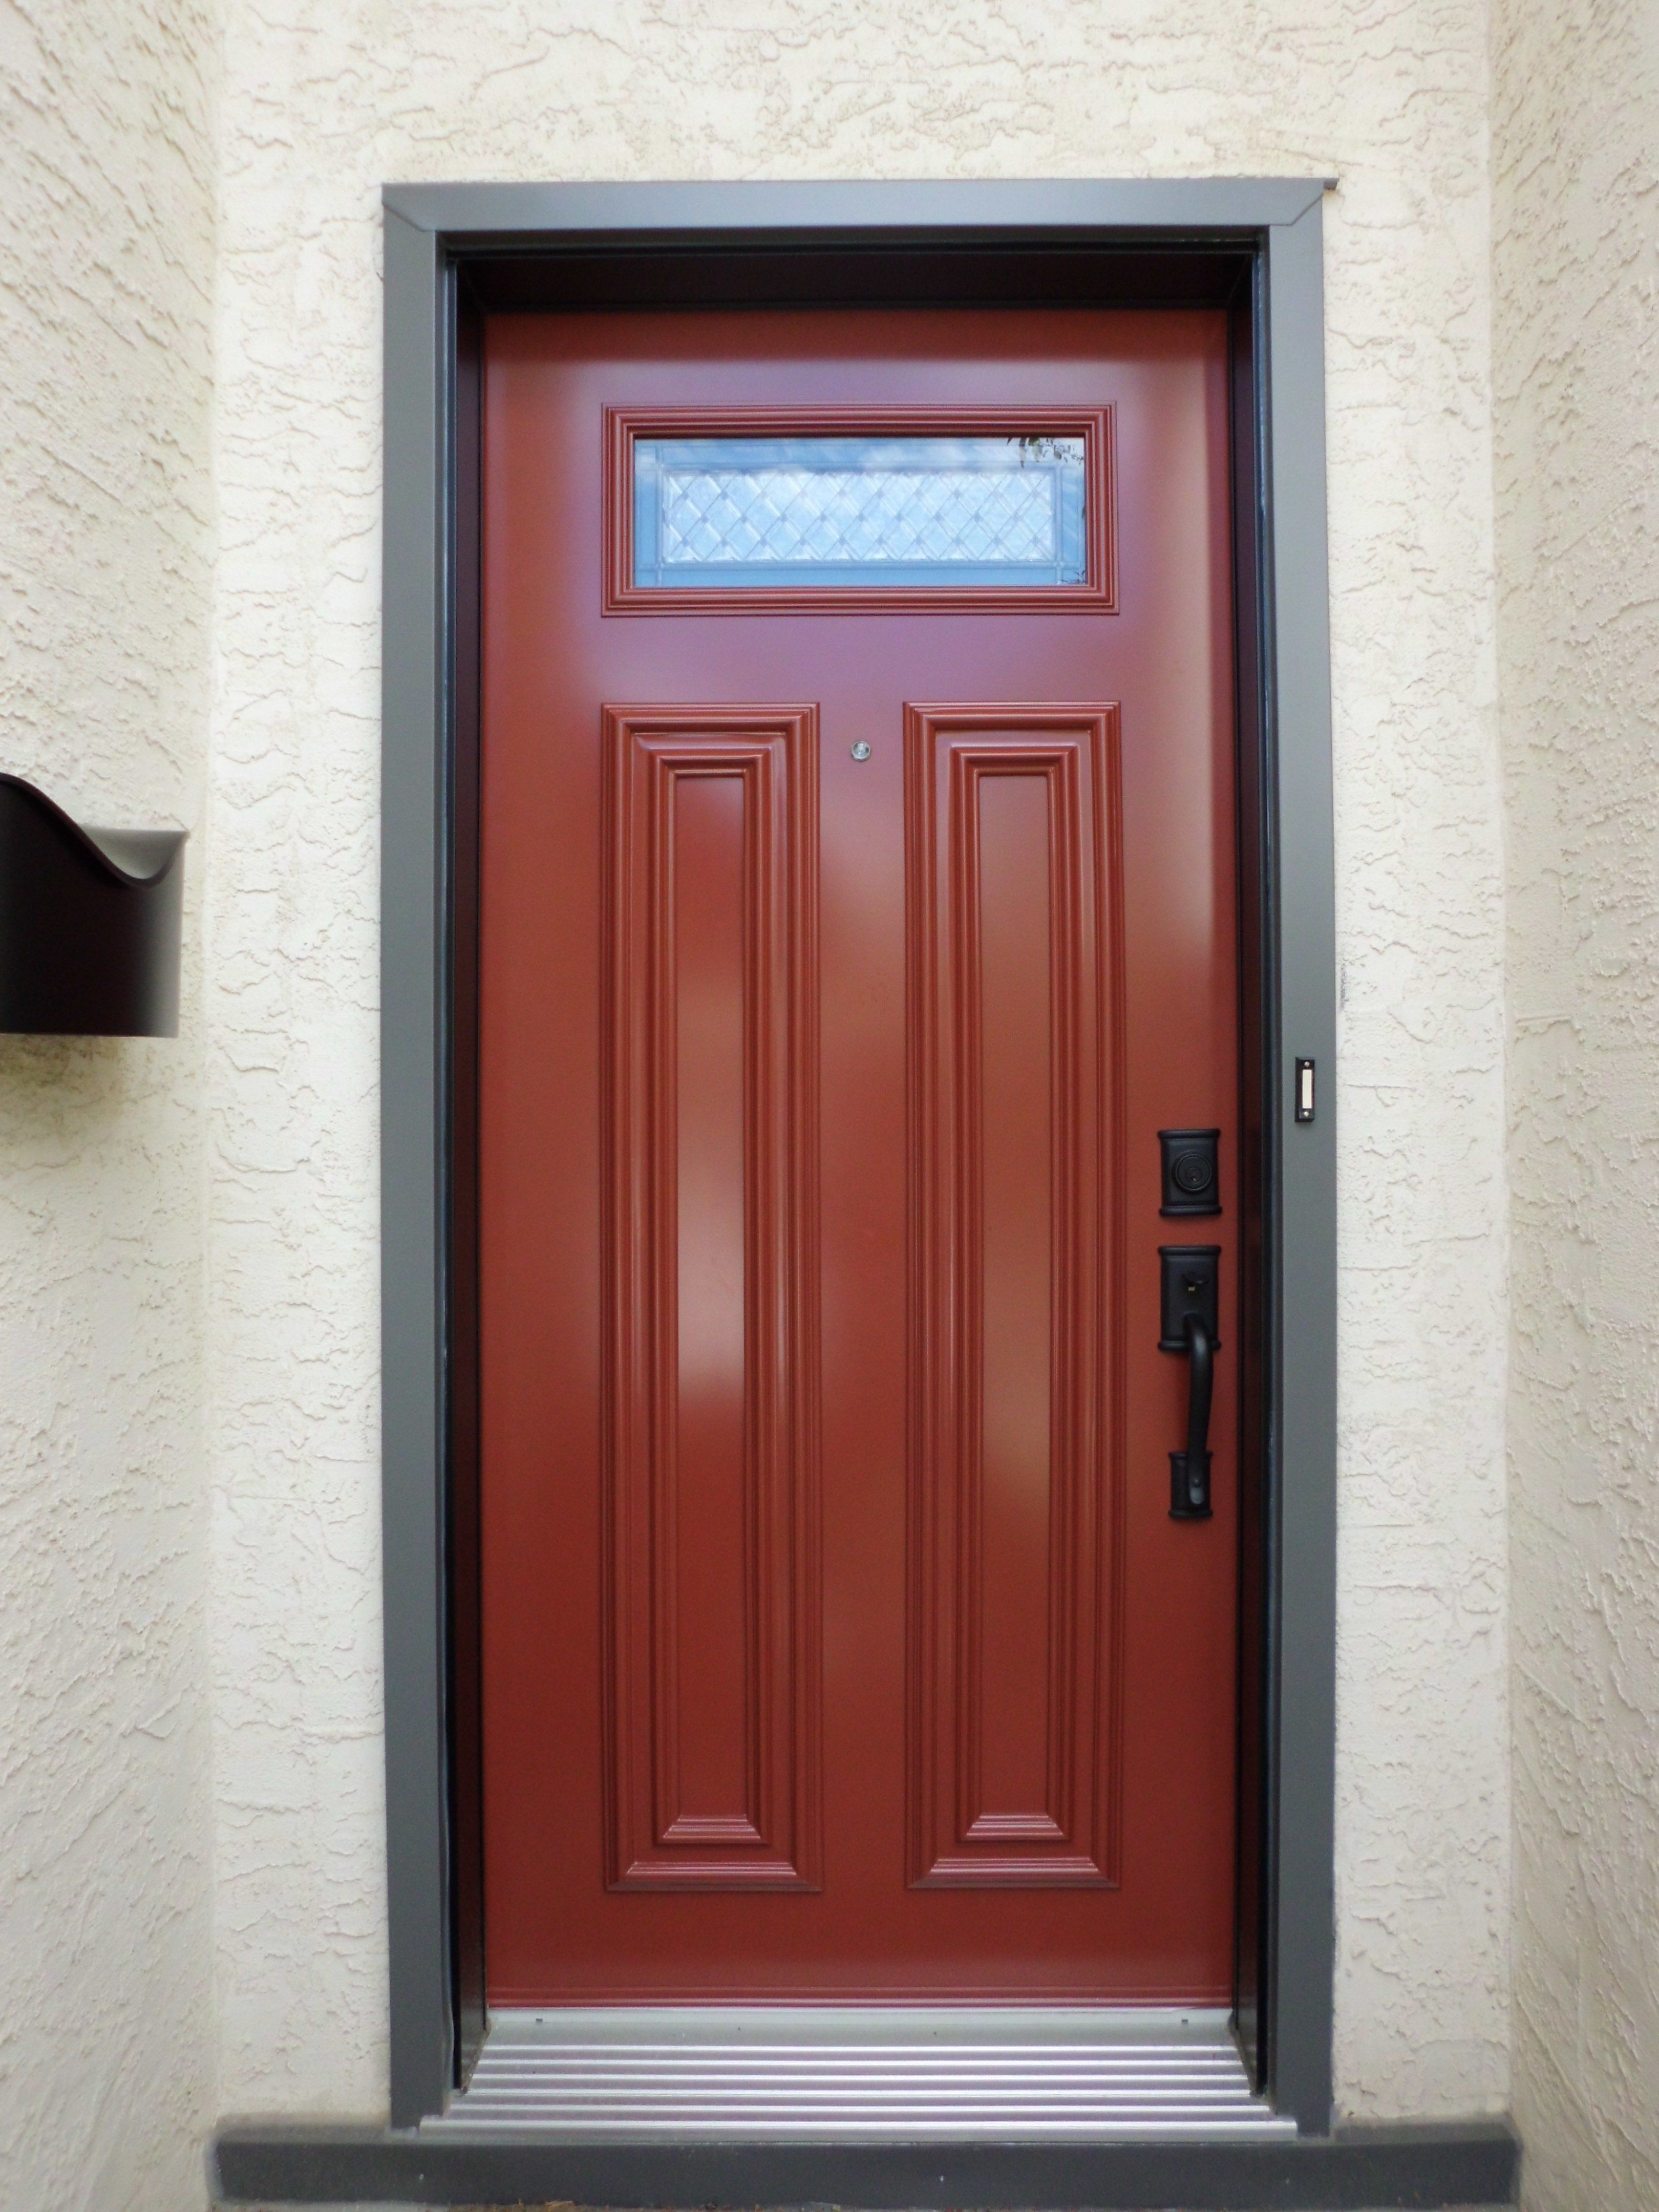 Belgrave glass insert by Verre Select Venetian Red coloured